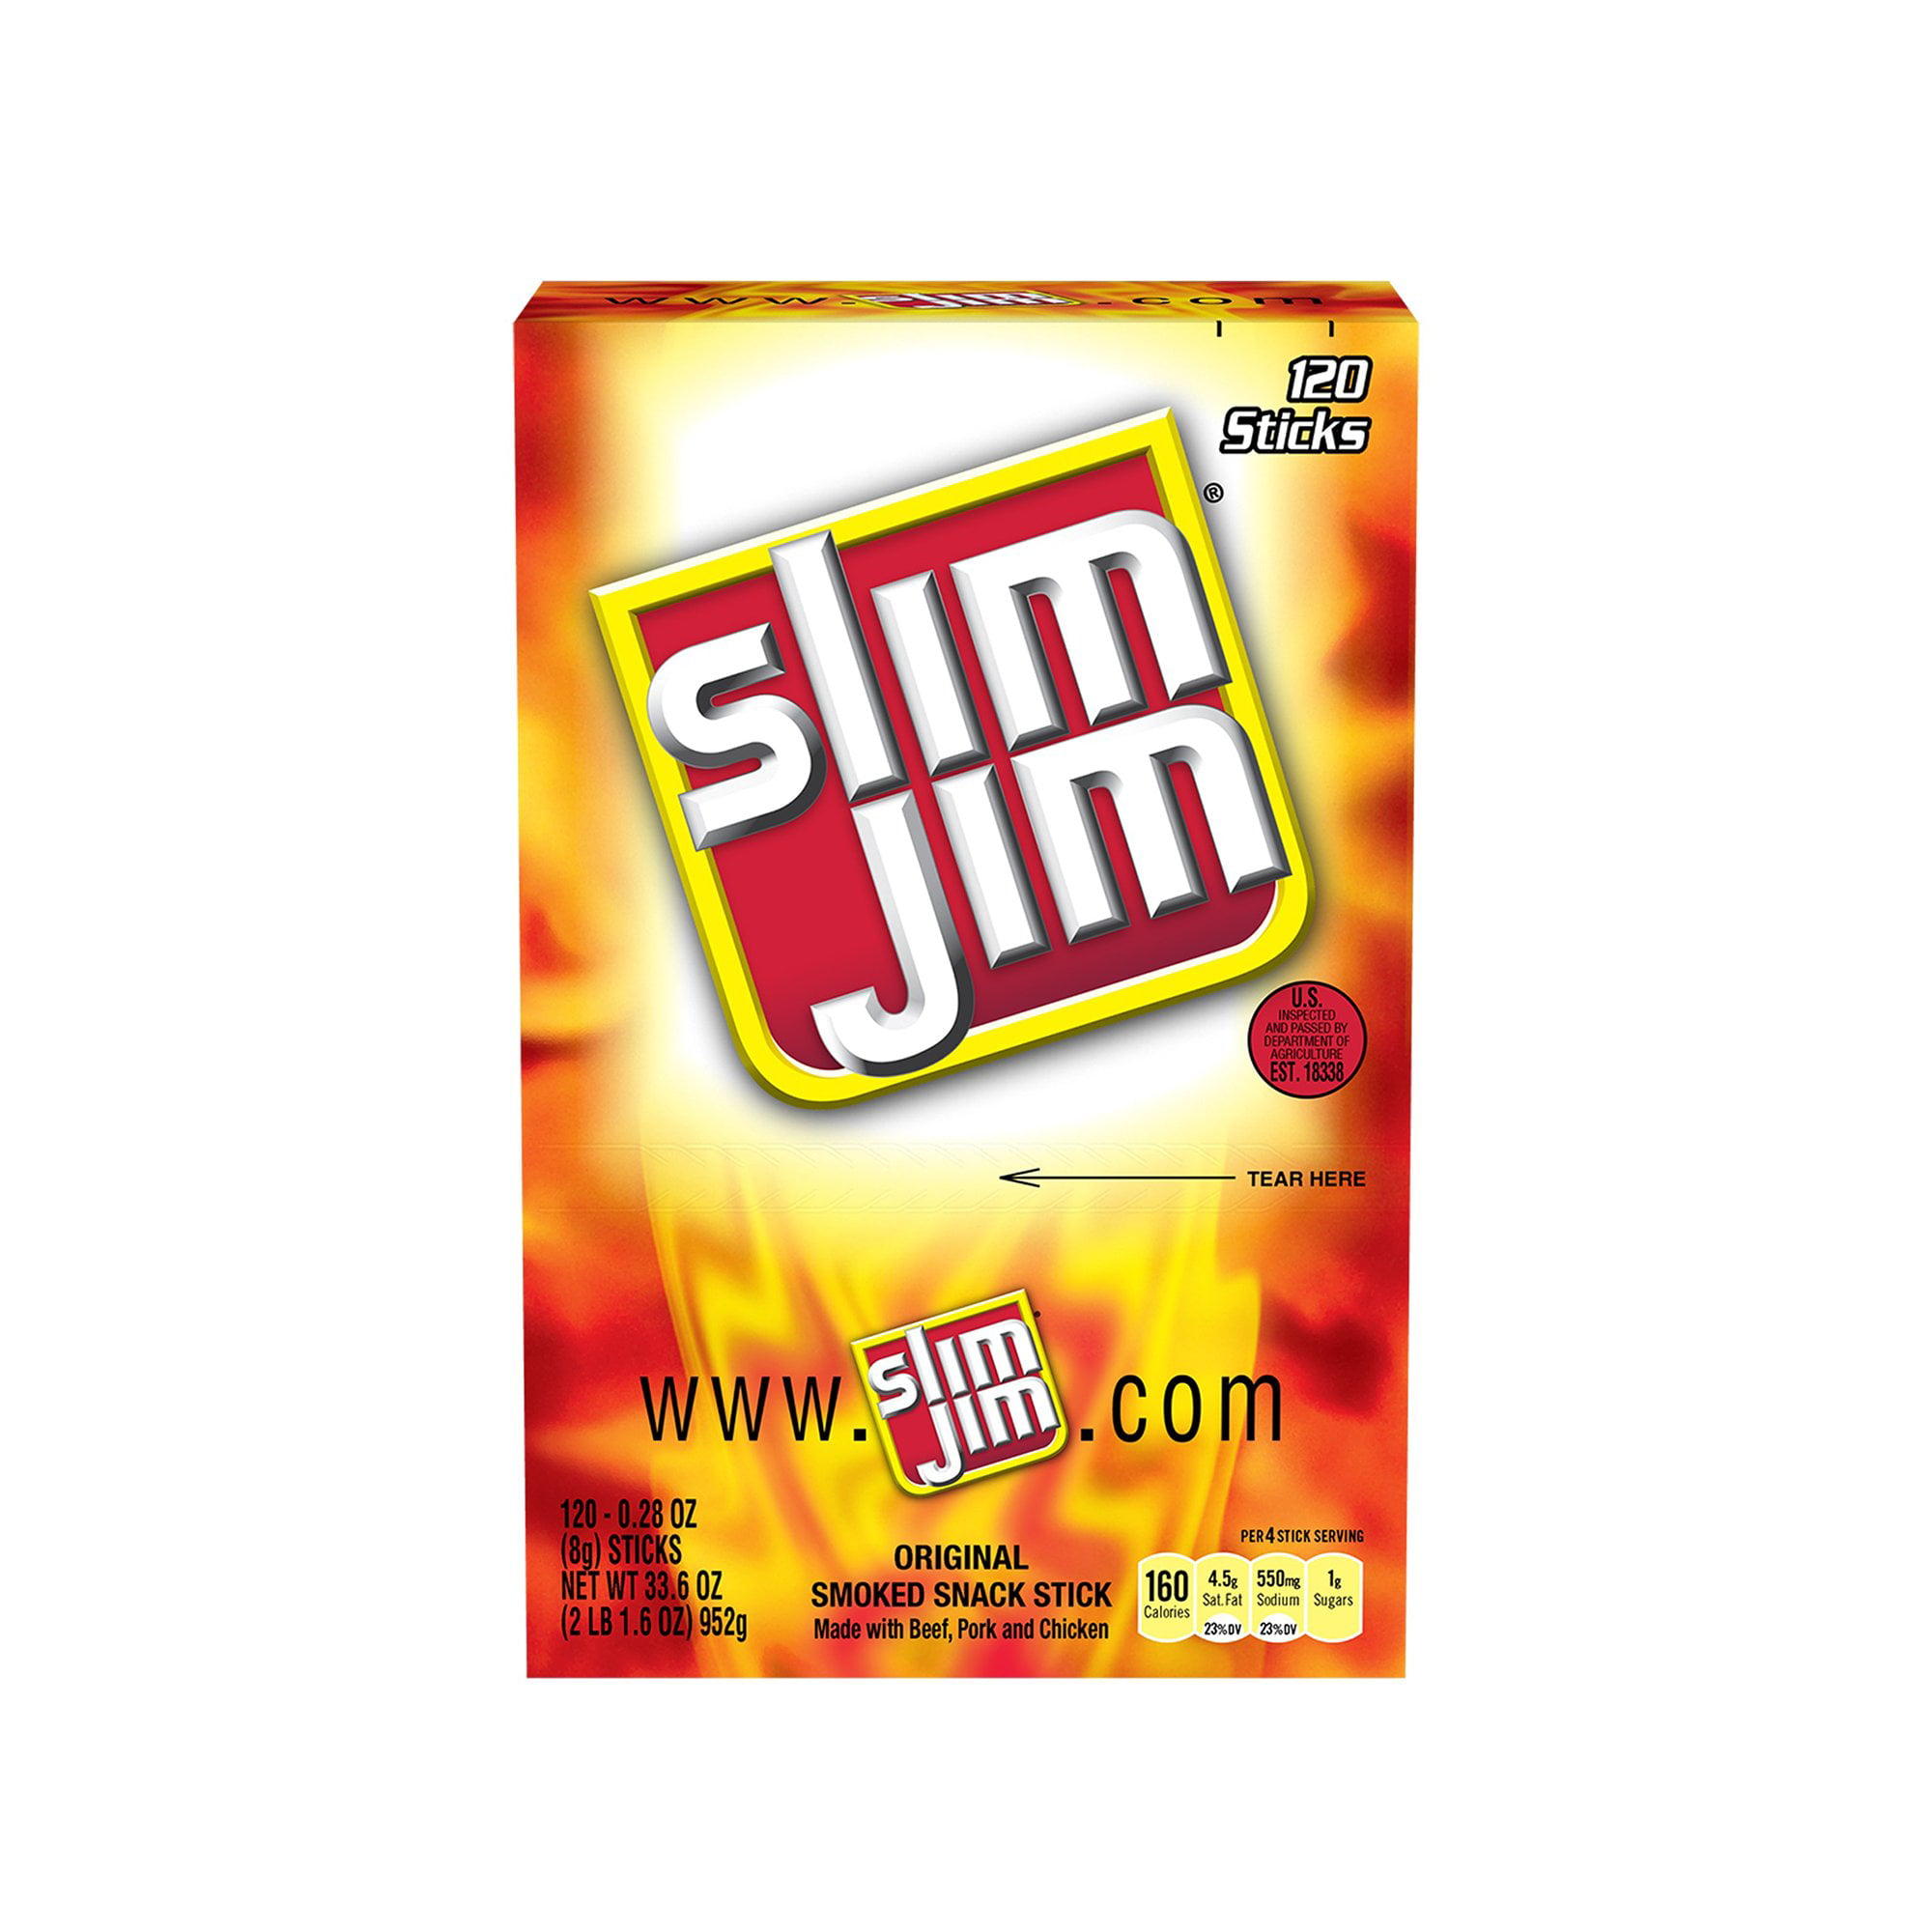 Branded Slim Jim Original (120 ct.) Pack of 1 [Qty Discount / wholesale price]